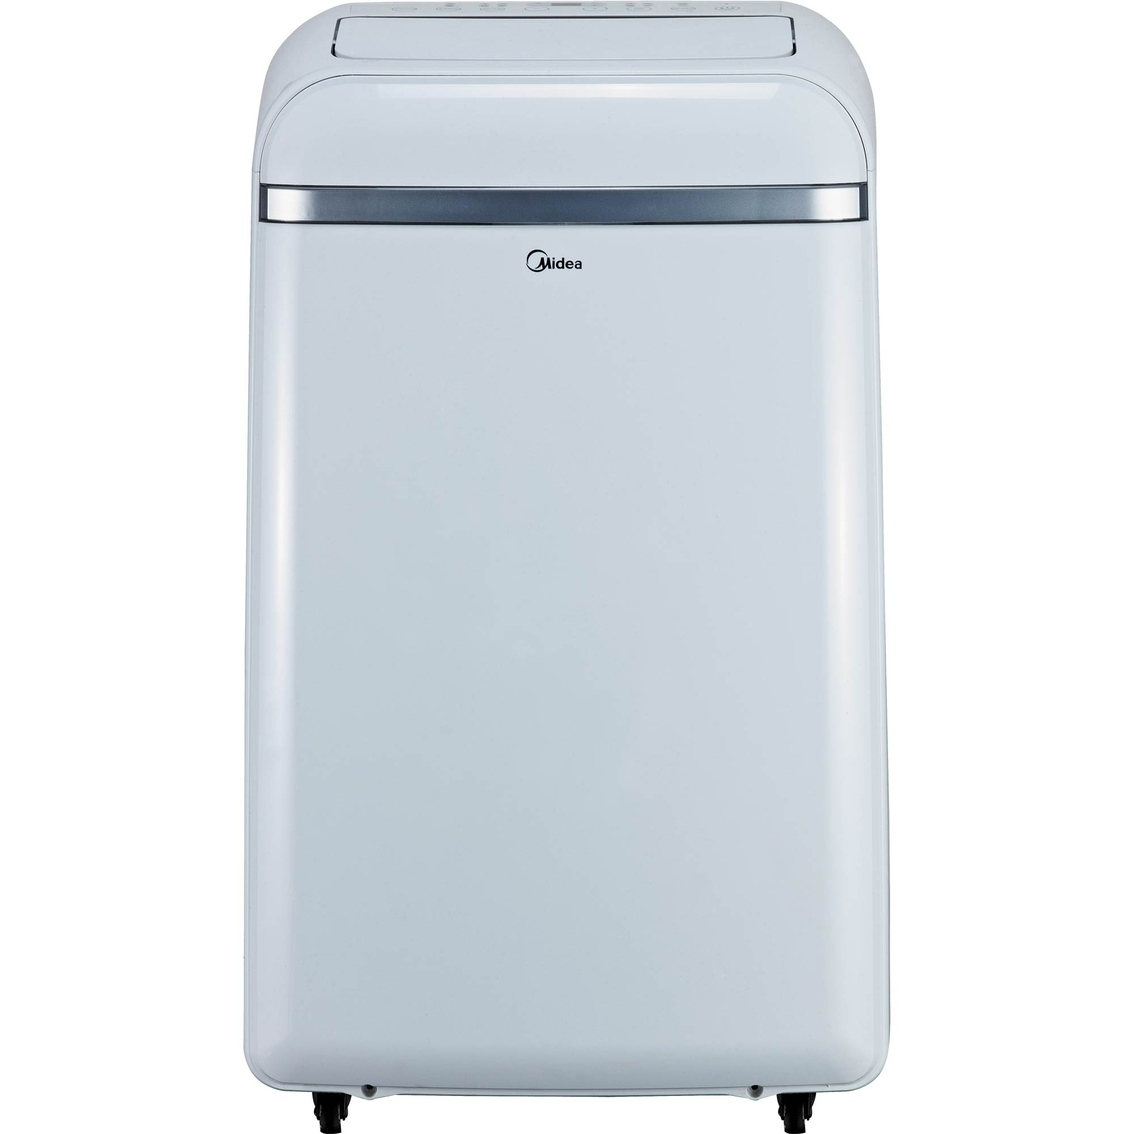 #3F4E61 Midea 14 000 Btu Portable Air Conditioner Portable Air  Most Effective 12405 Household Air Conditioners pictures with 1134x1134 px on helpvideos.info - Air Conditioners, Air Coolers and more